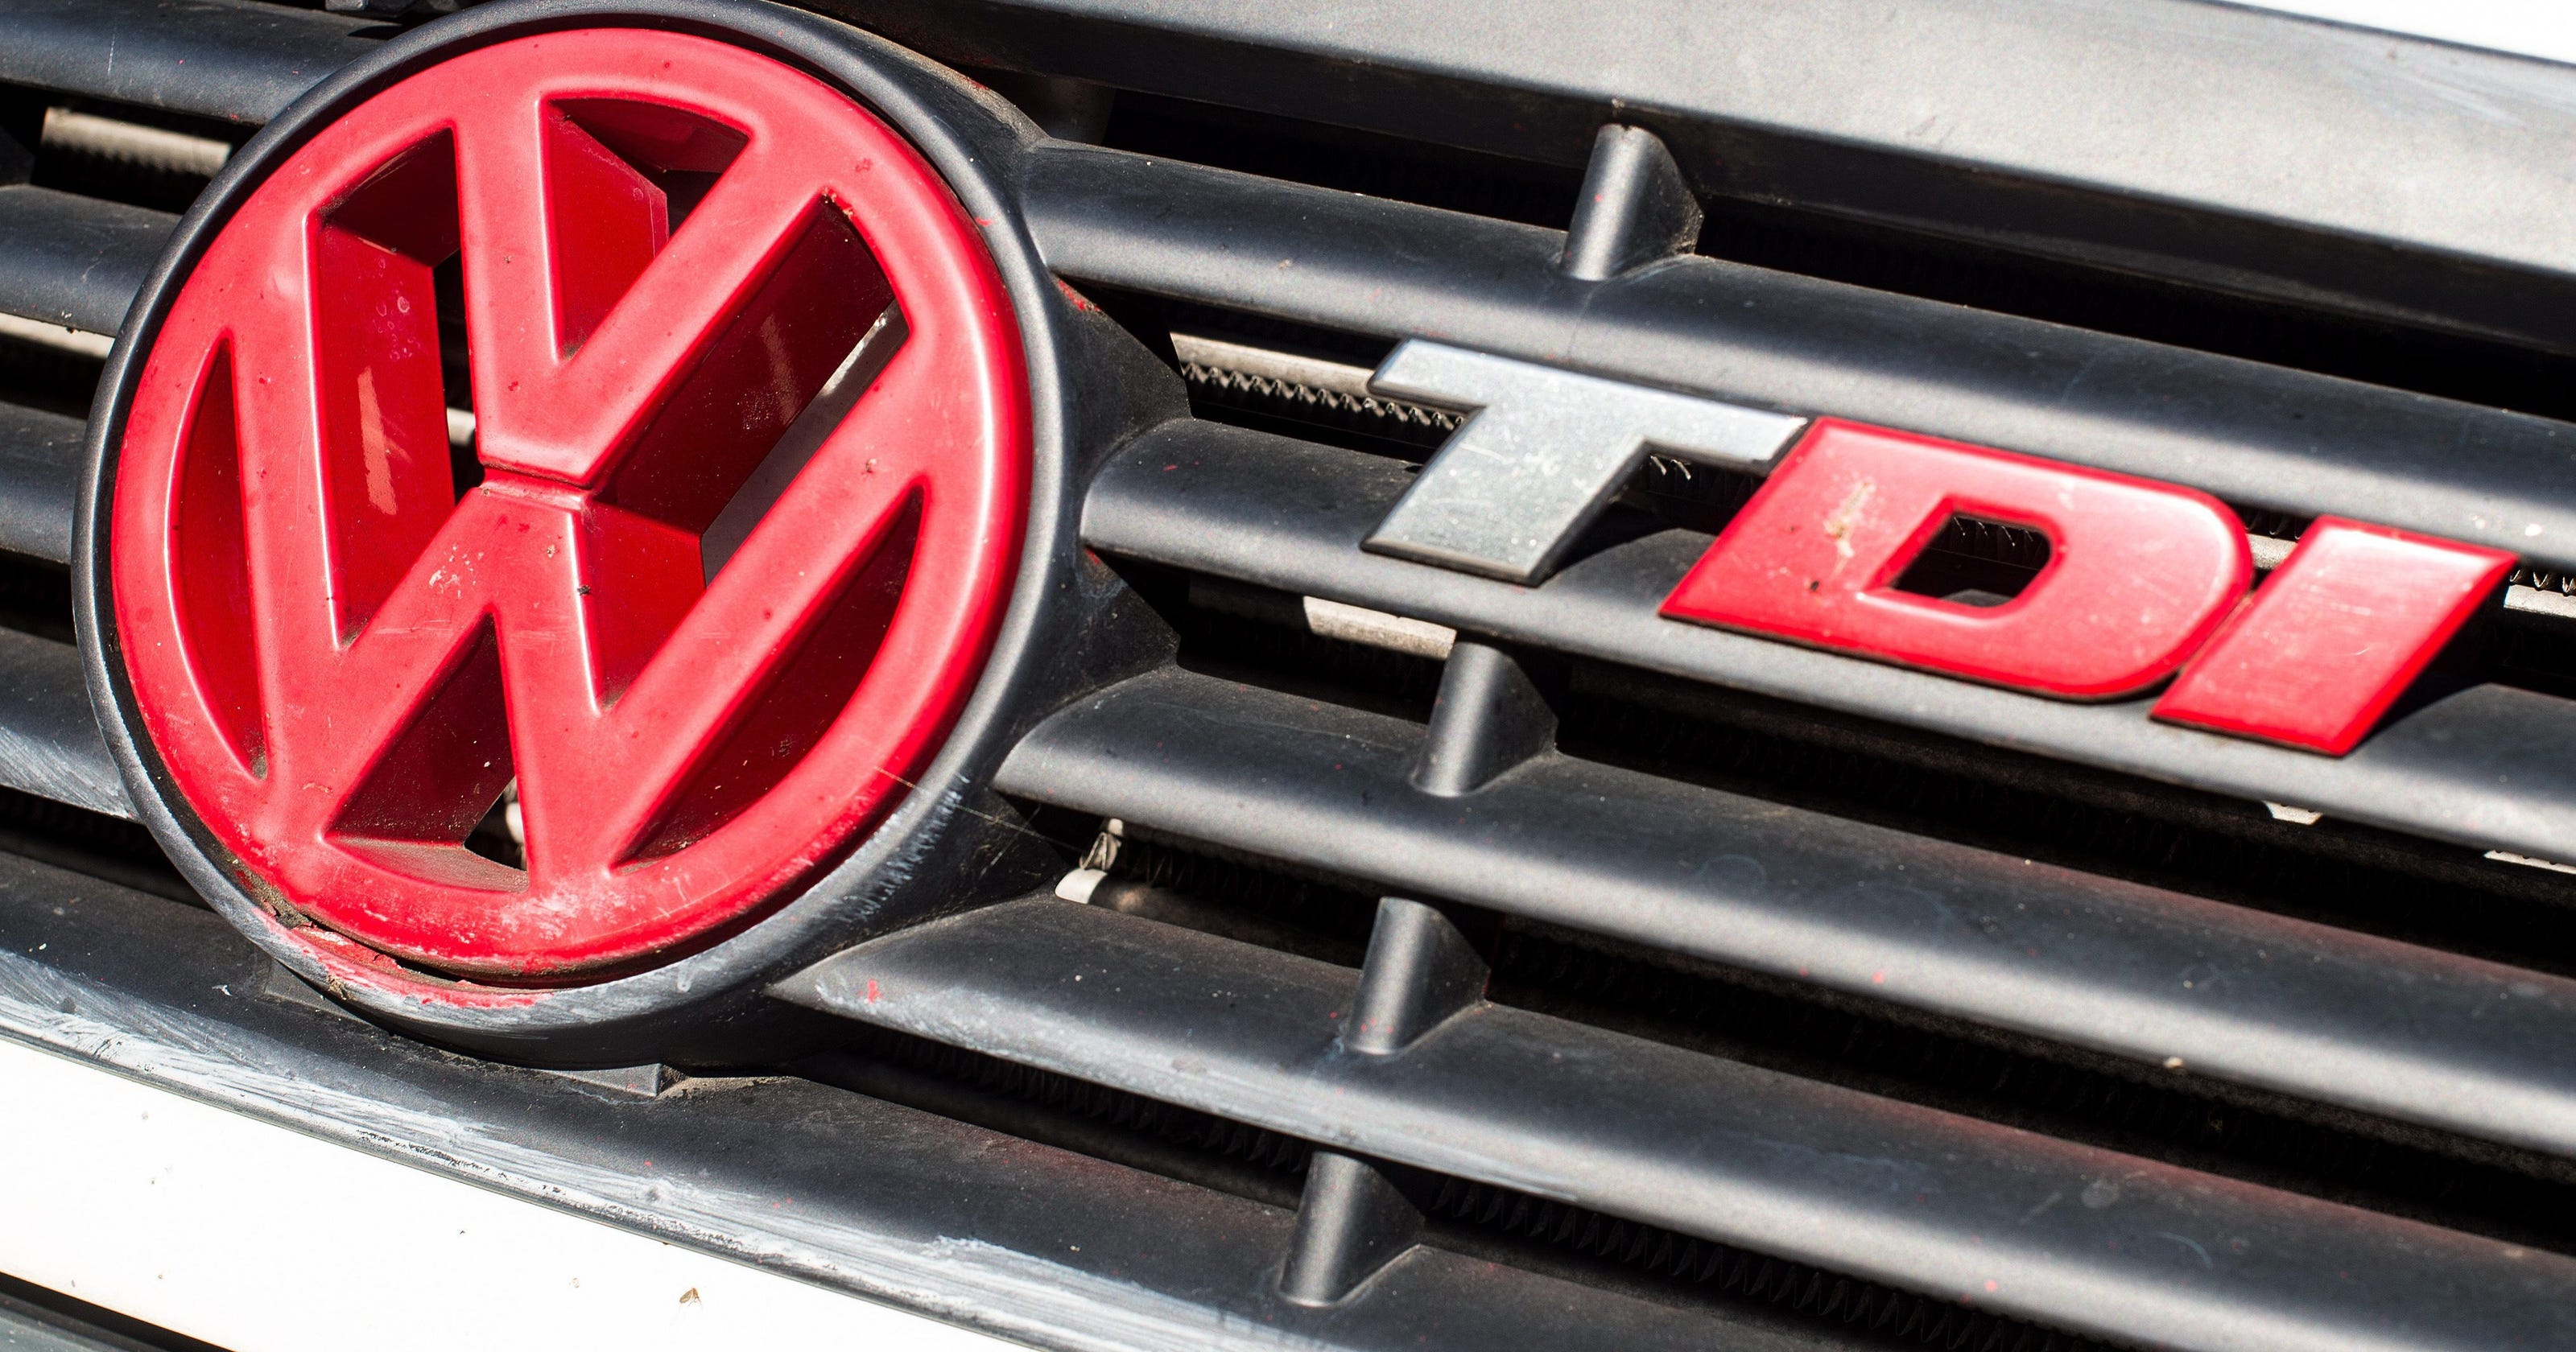 Volkswagen Must Pay 28b Criminal Fine For Emissions Cheating